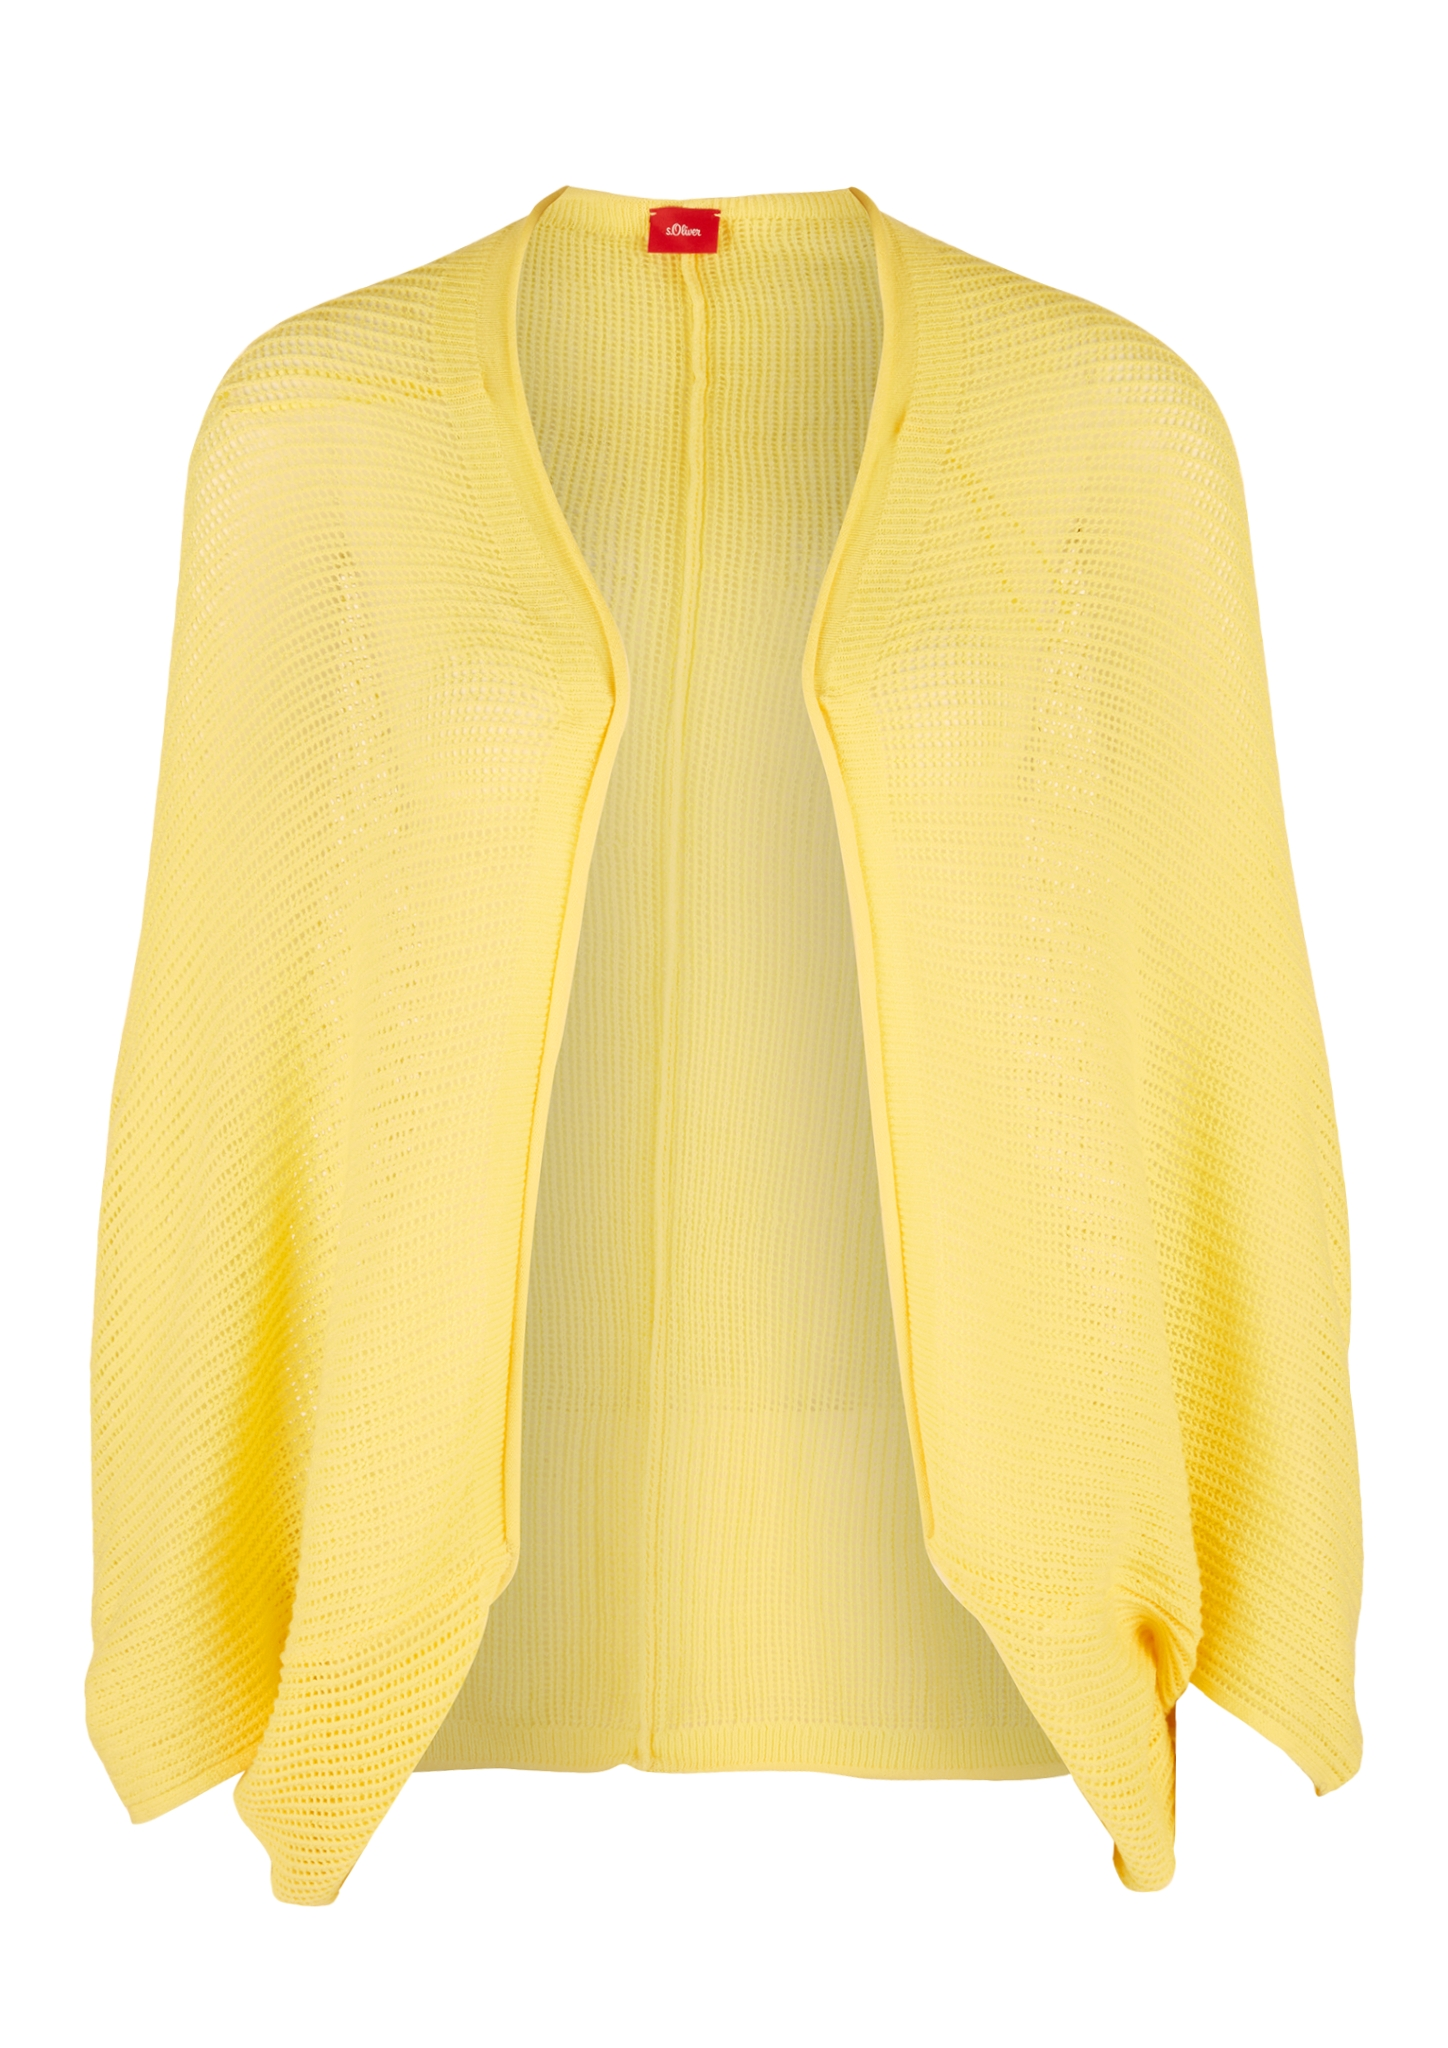 Poncho   Bekleidung > Pullover > Ponchos & Capes   s.Oliver